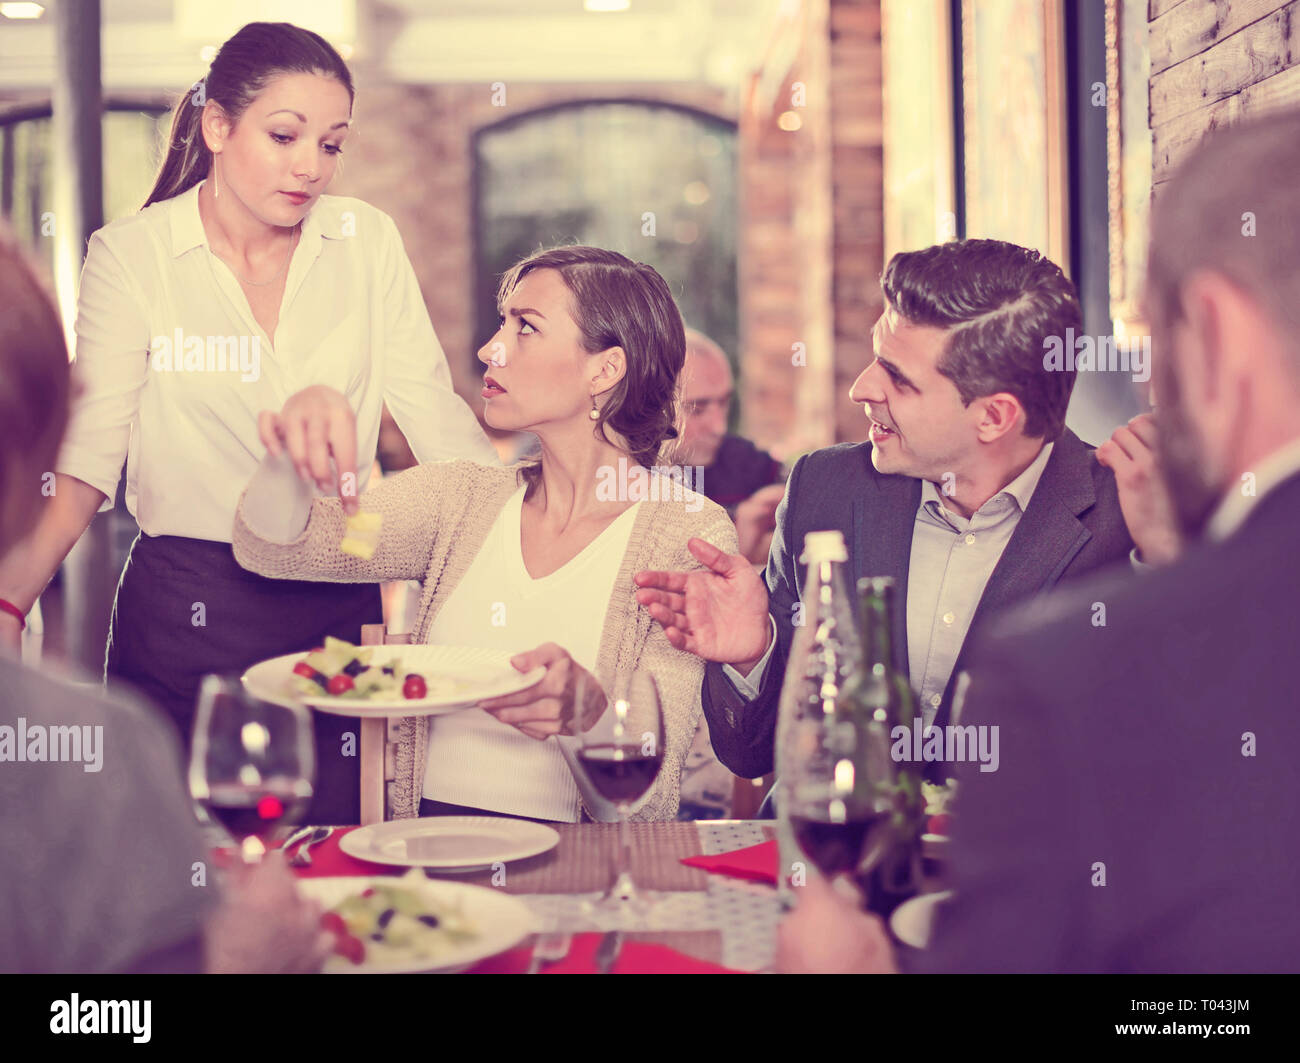 Company of people expressing dissatisfaction with the waitress about food - Stock Image